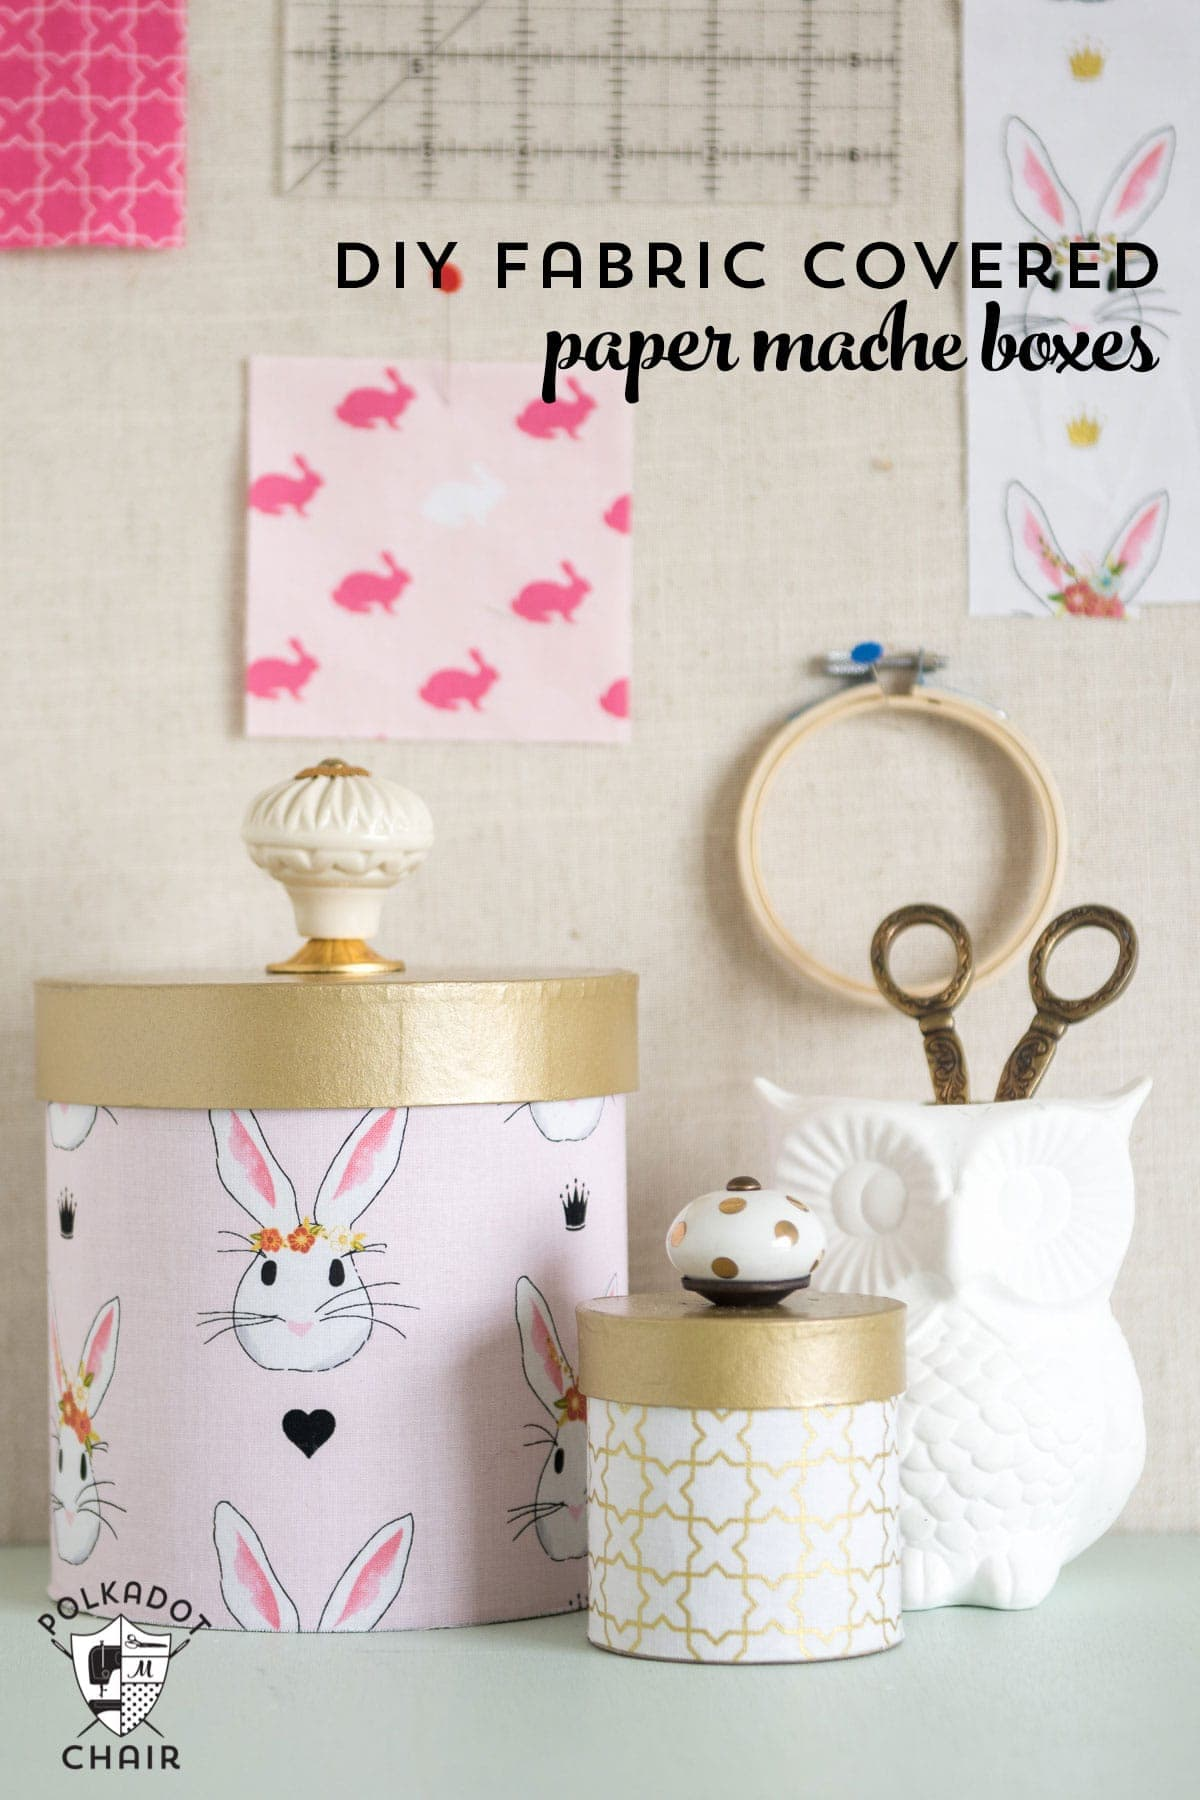 hight resolution of learn how to cover paper mache boxes with fabric to make these cute diy storage containers